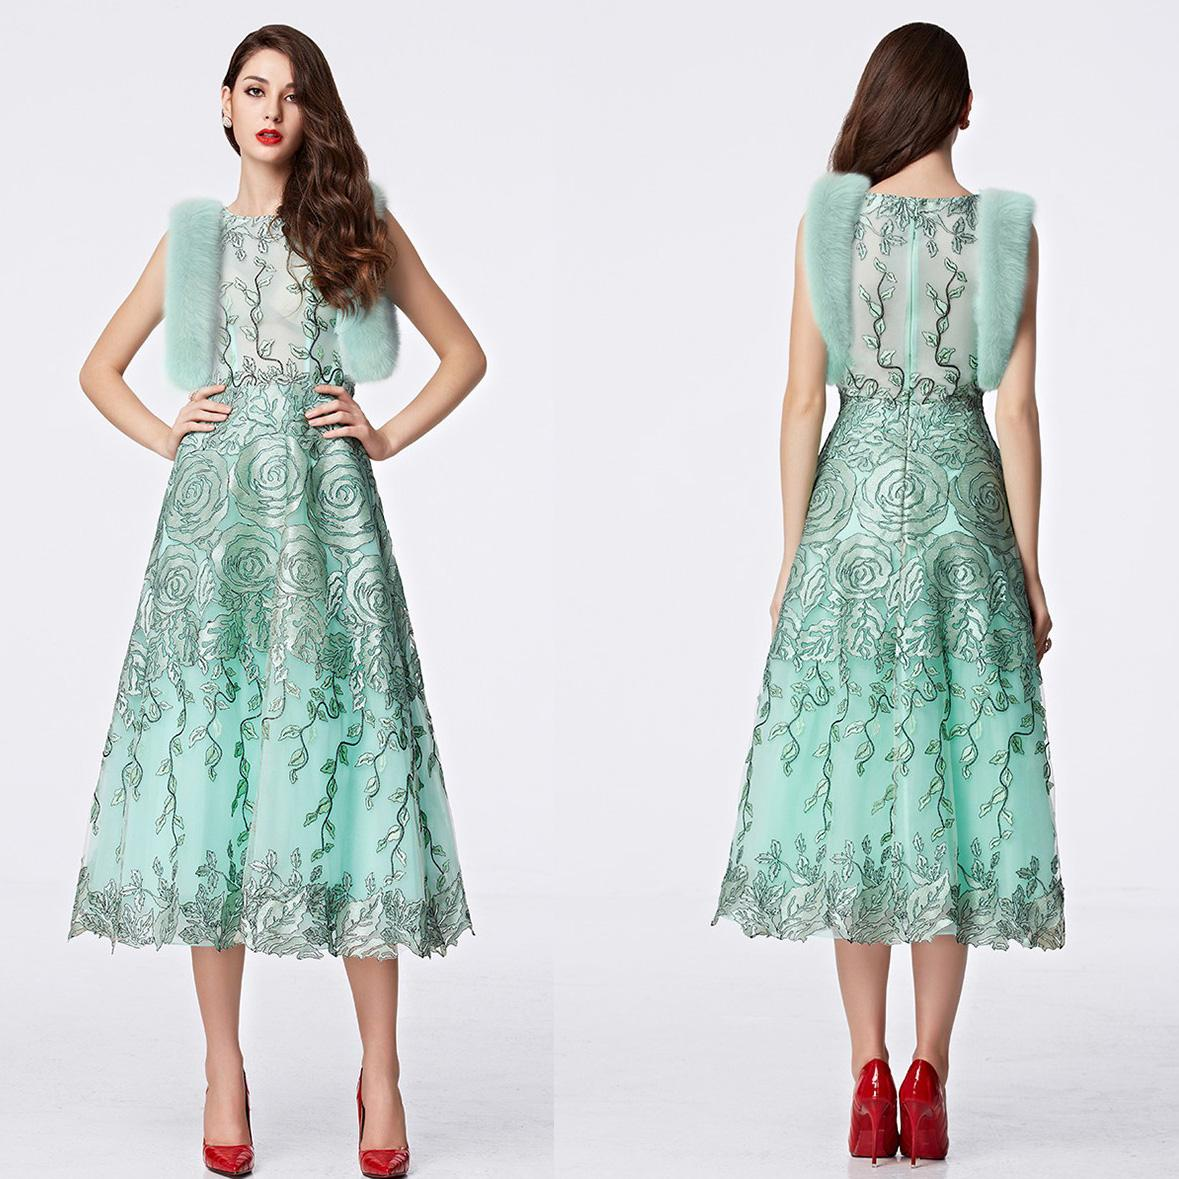 y Light Green Long Cocktail Dresses 2016 A Line Jewel